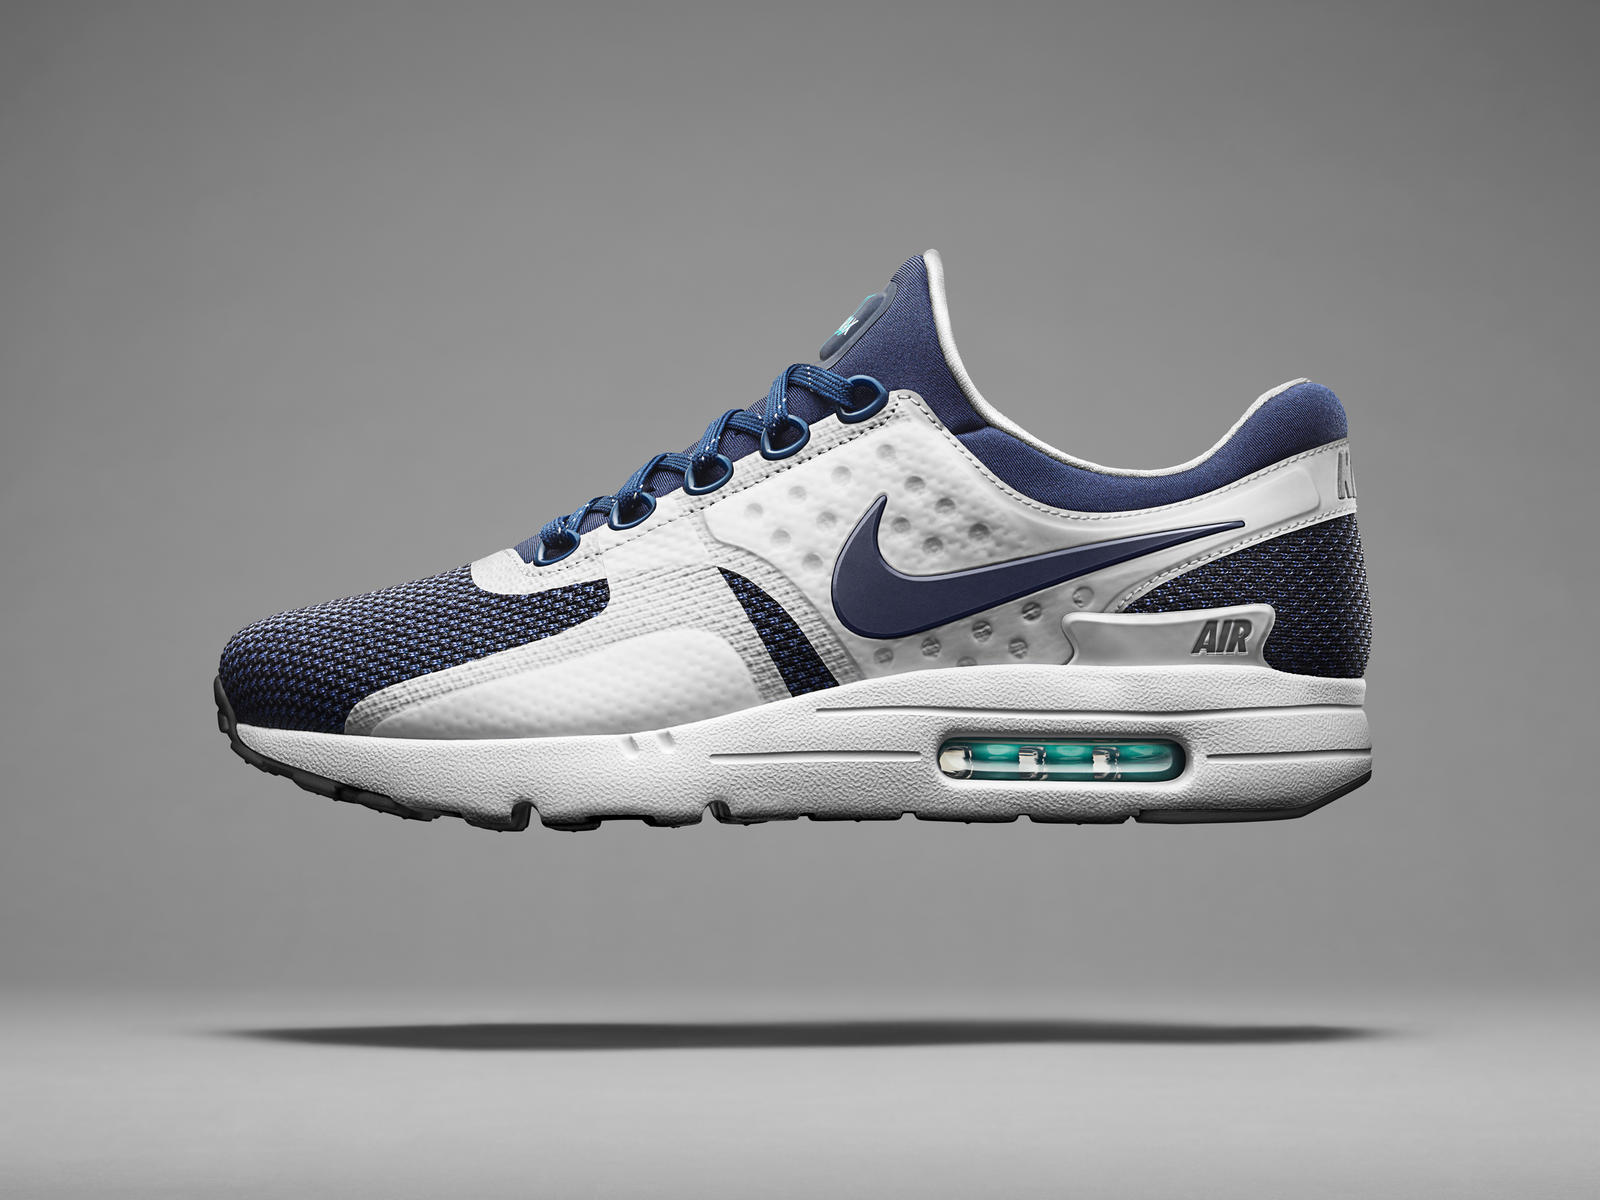 best wholesaler well known classic shoes From Zero to 1: The Tale of the First Air Max - Nike News